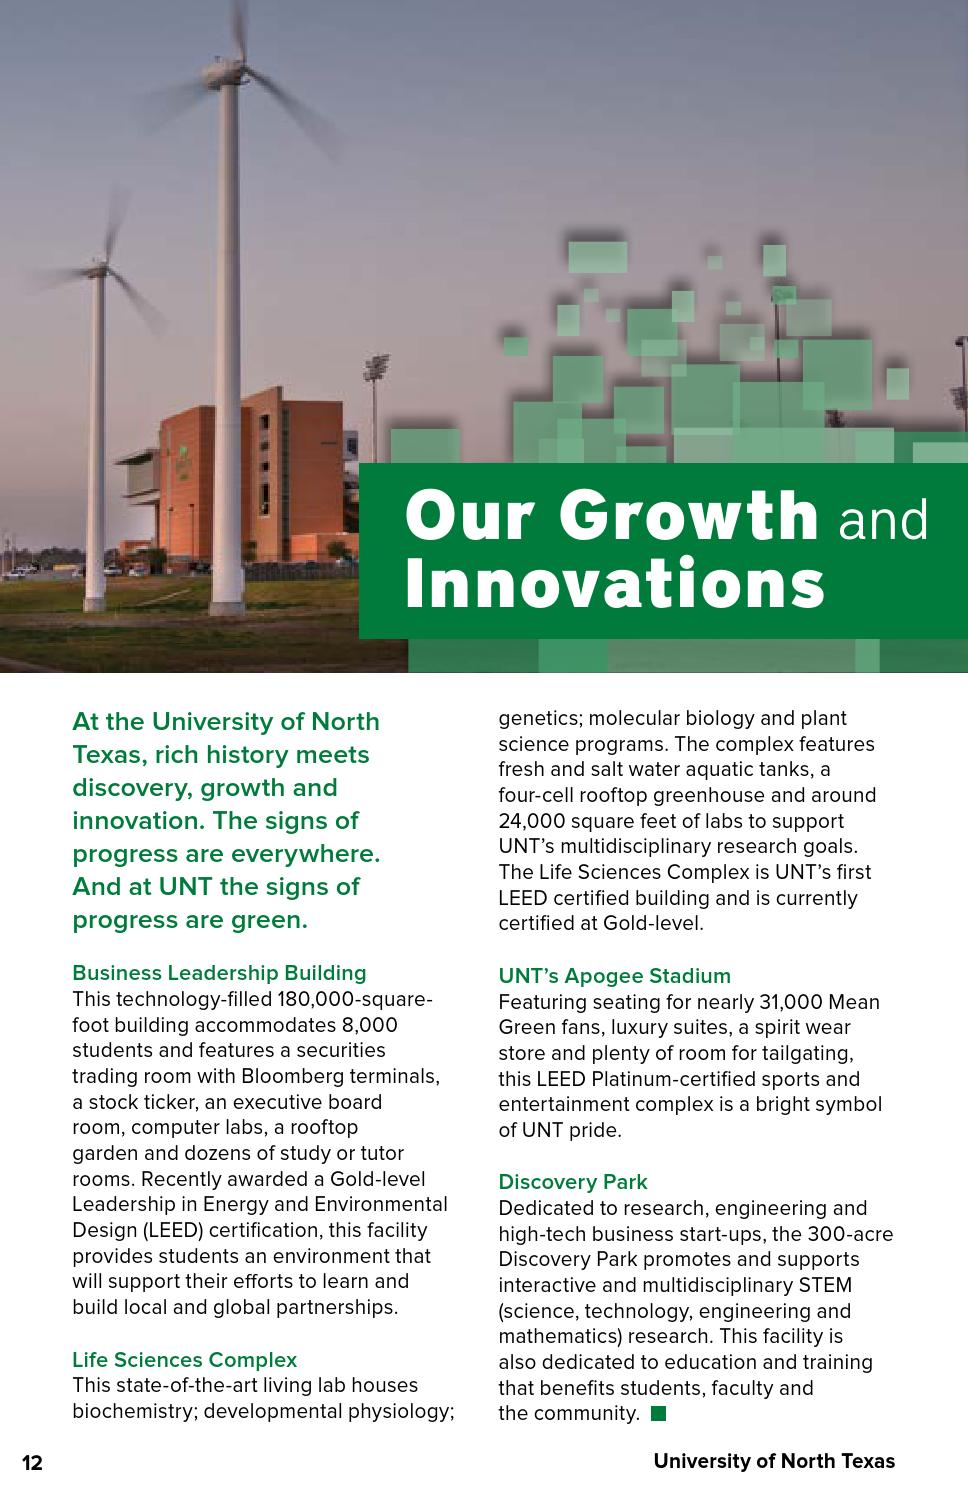 University of North Texas 2015-2016 Guide For Parents by